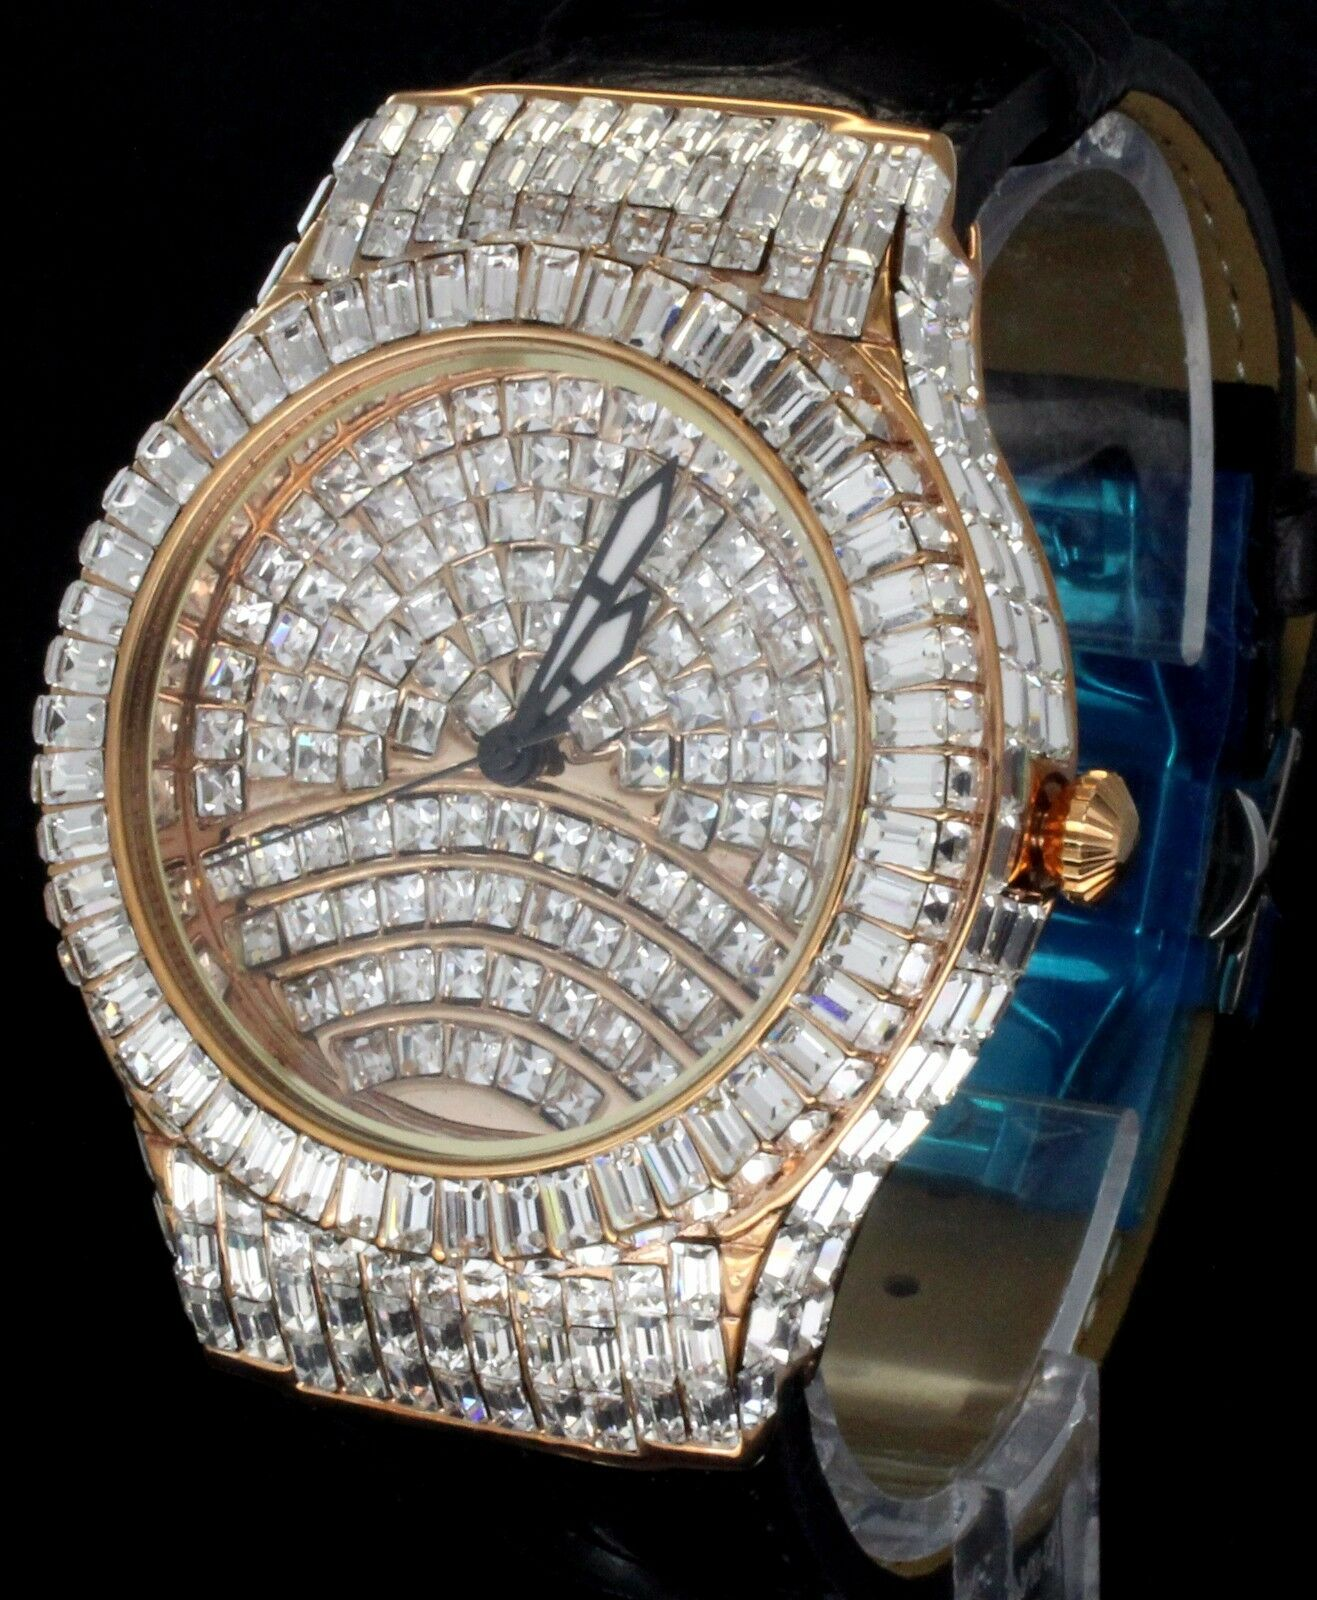 $99.99 - 43mm Swiss Movt Rose Gold Tone Simulated Diamond Leather Luxury Mens Wrist Watch